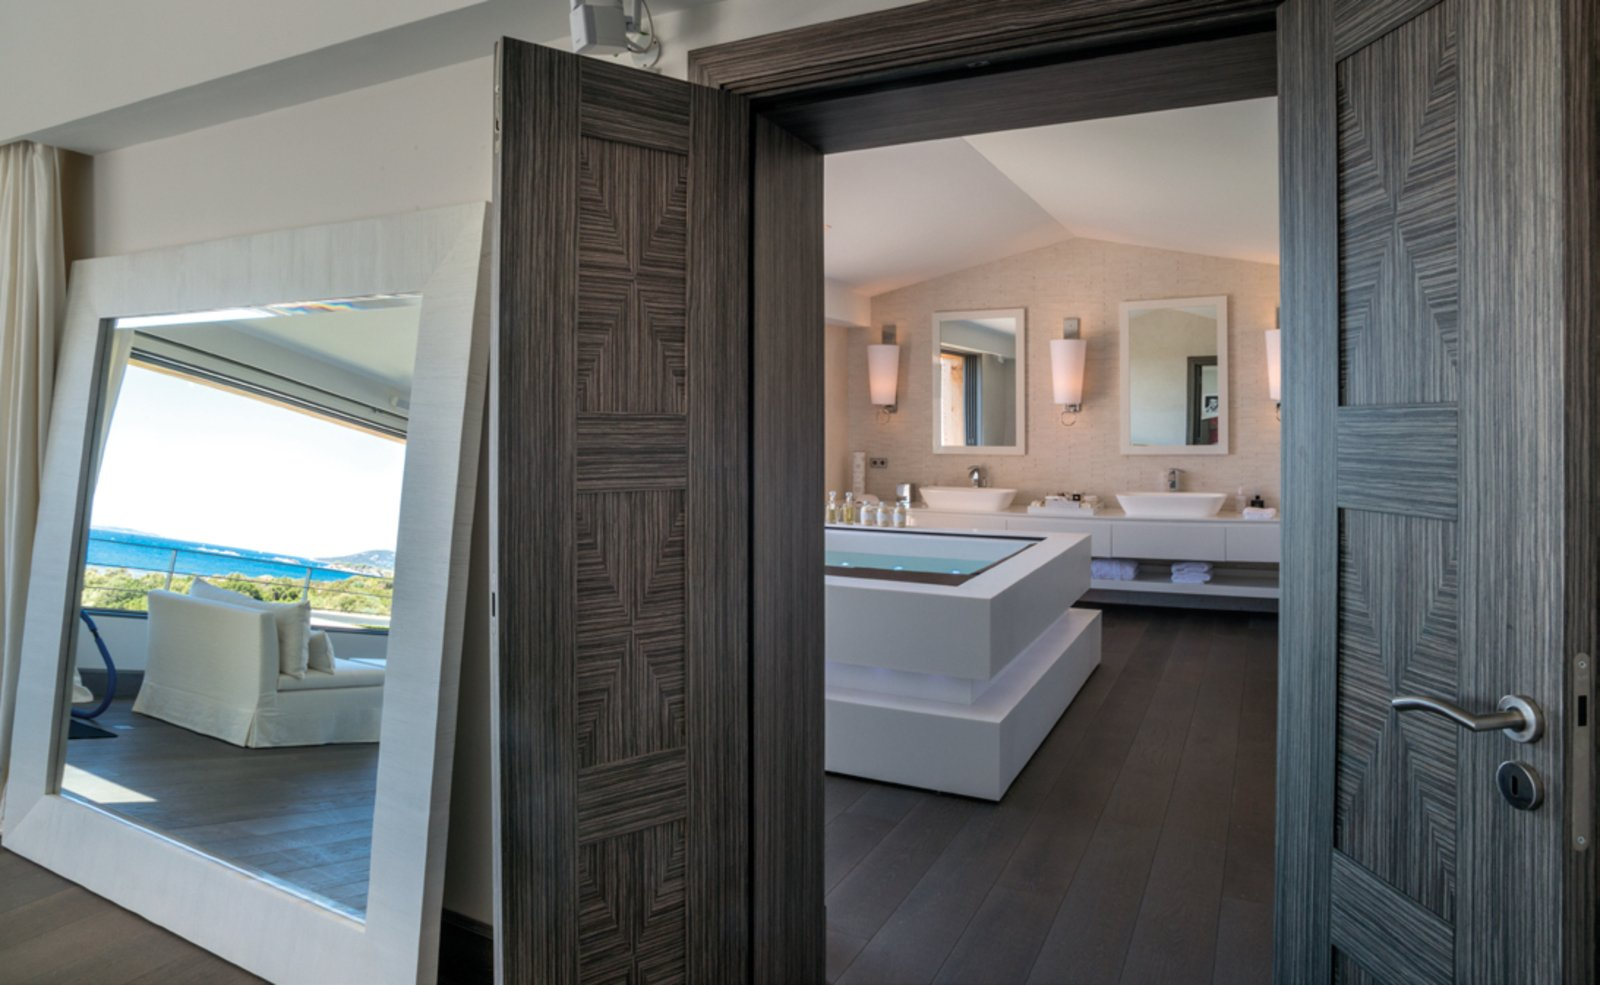 Salle De Bain Archi Expo ~ corsica punta d oro exceptional property feet in the water for sale